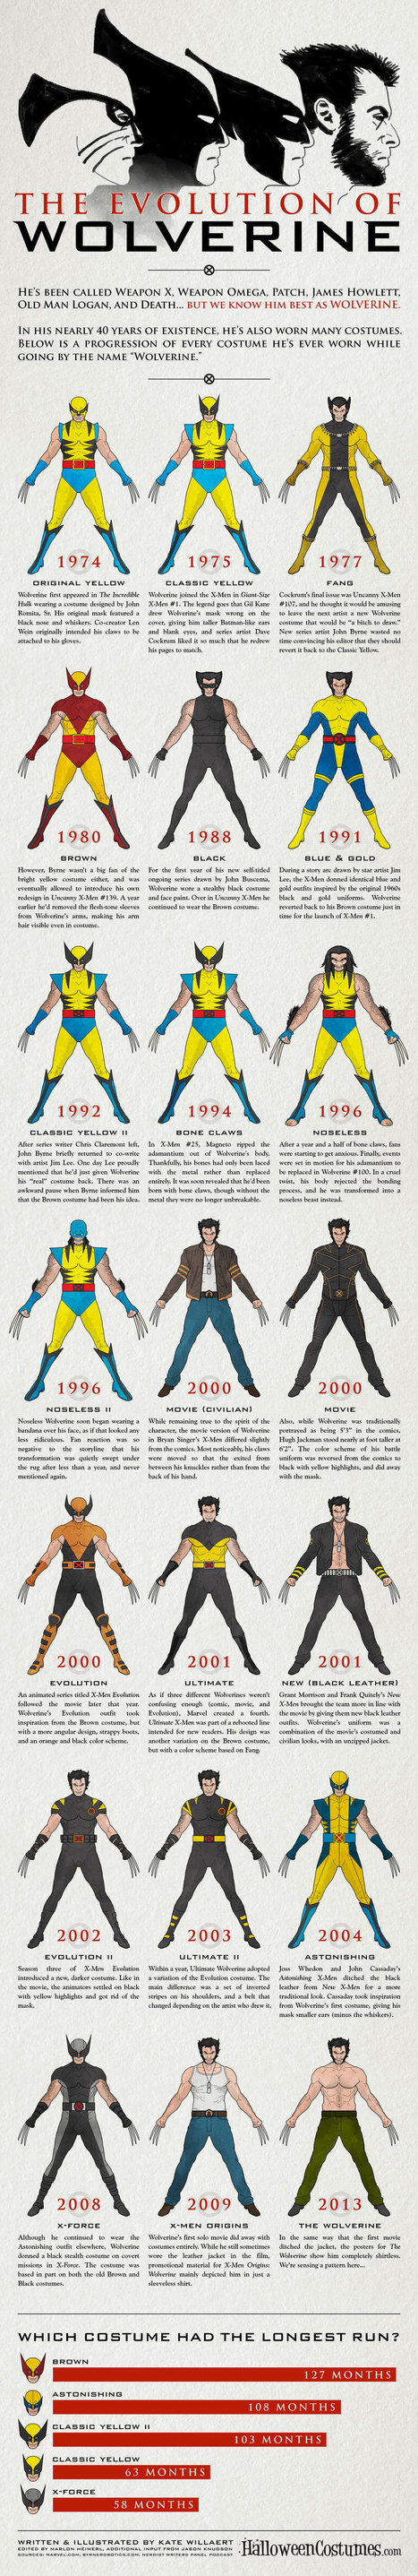 Infographic: The Evolution Of Wolverine - Socks On An Octopus | Creatively Awesome | Scoop.it